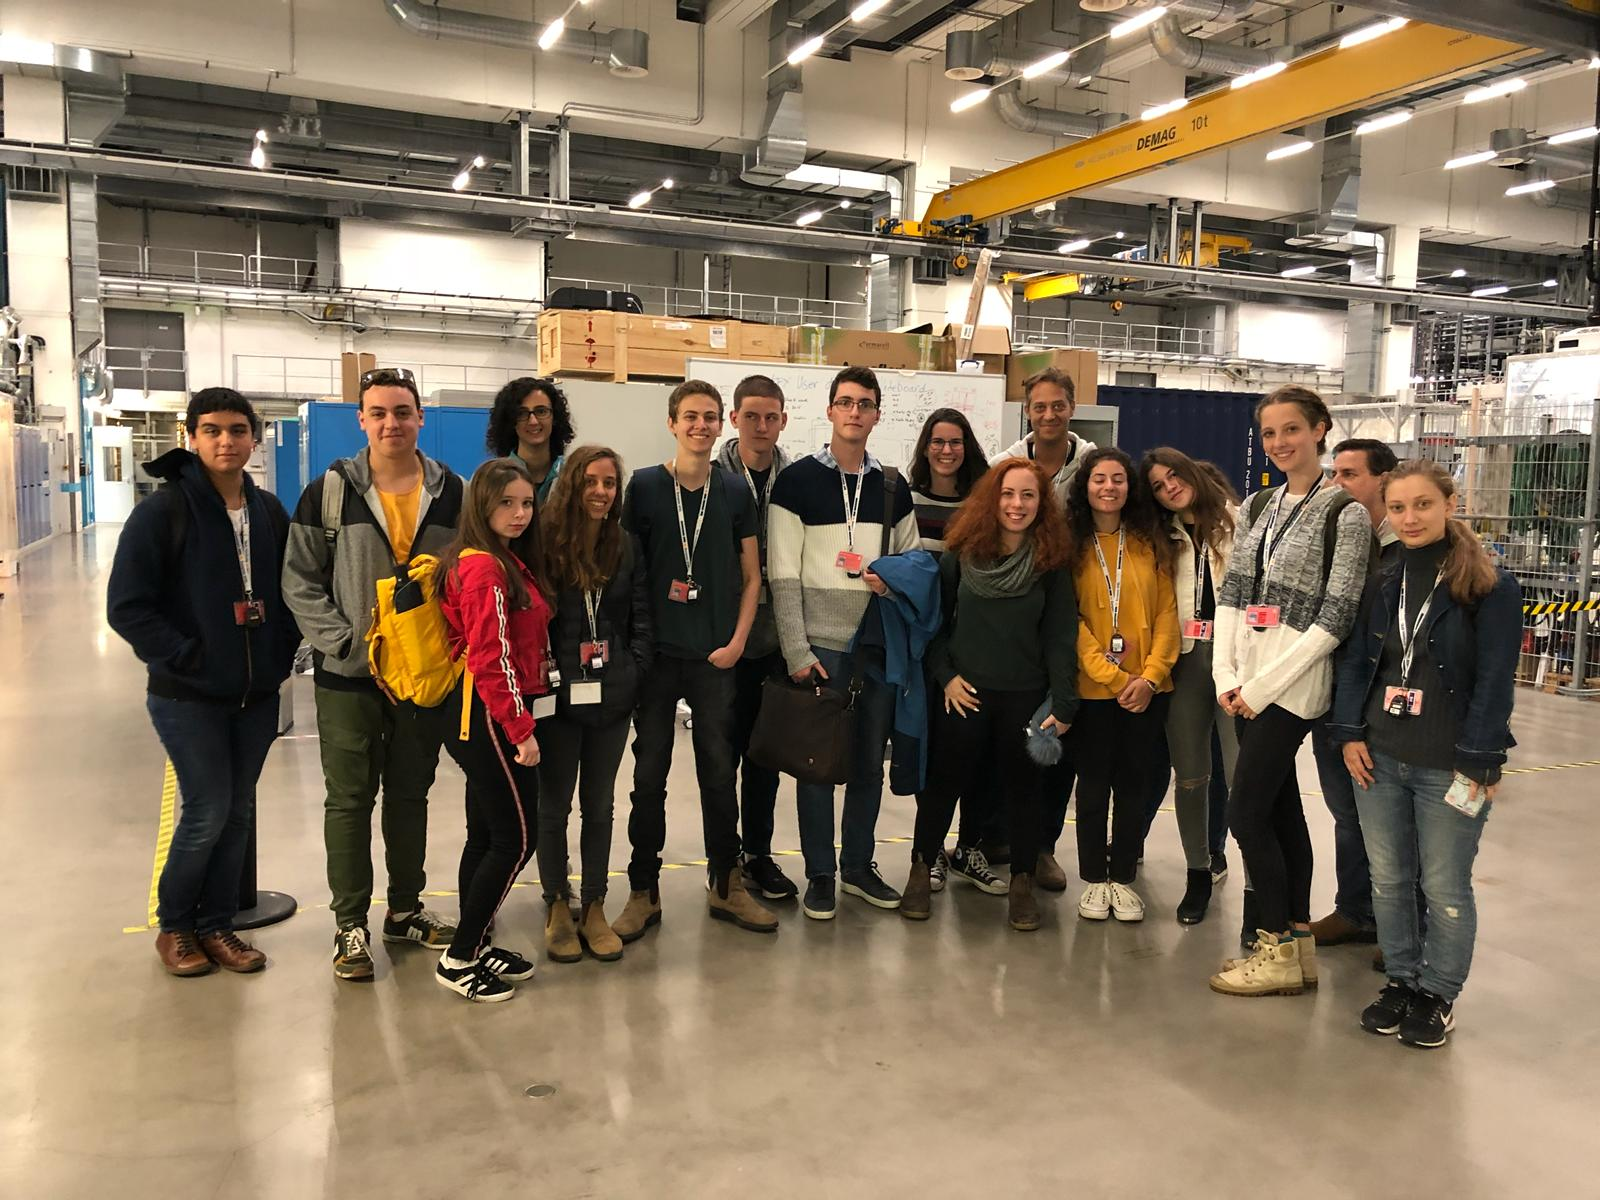 A group of students in the DESY facilities.